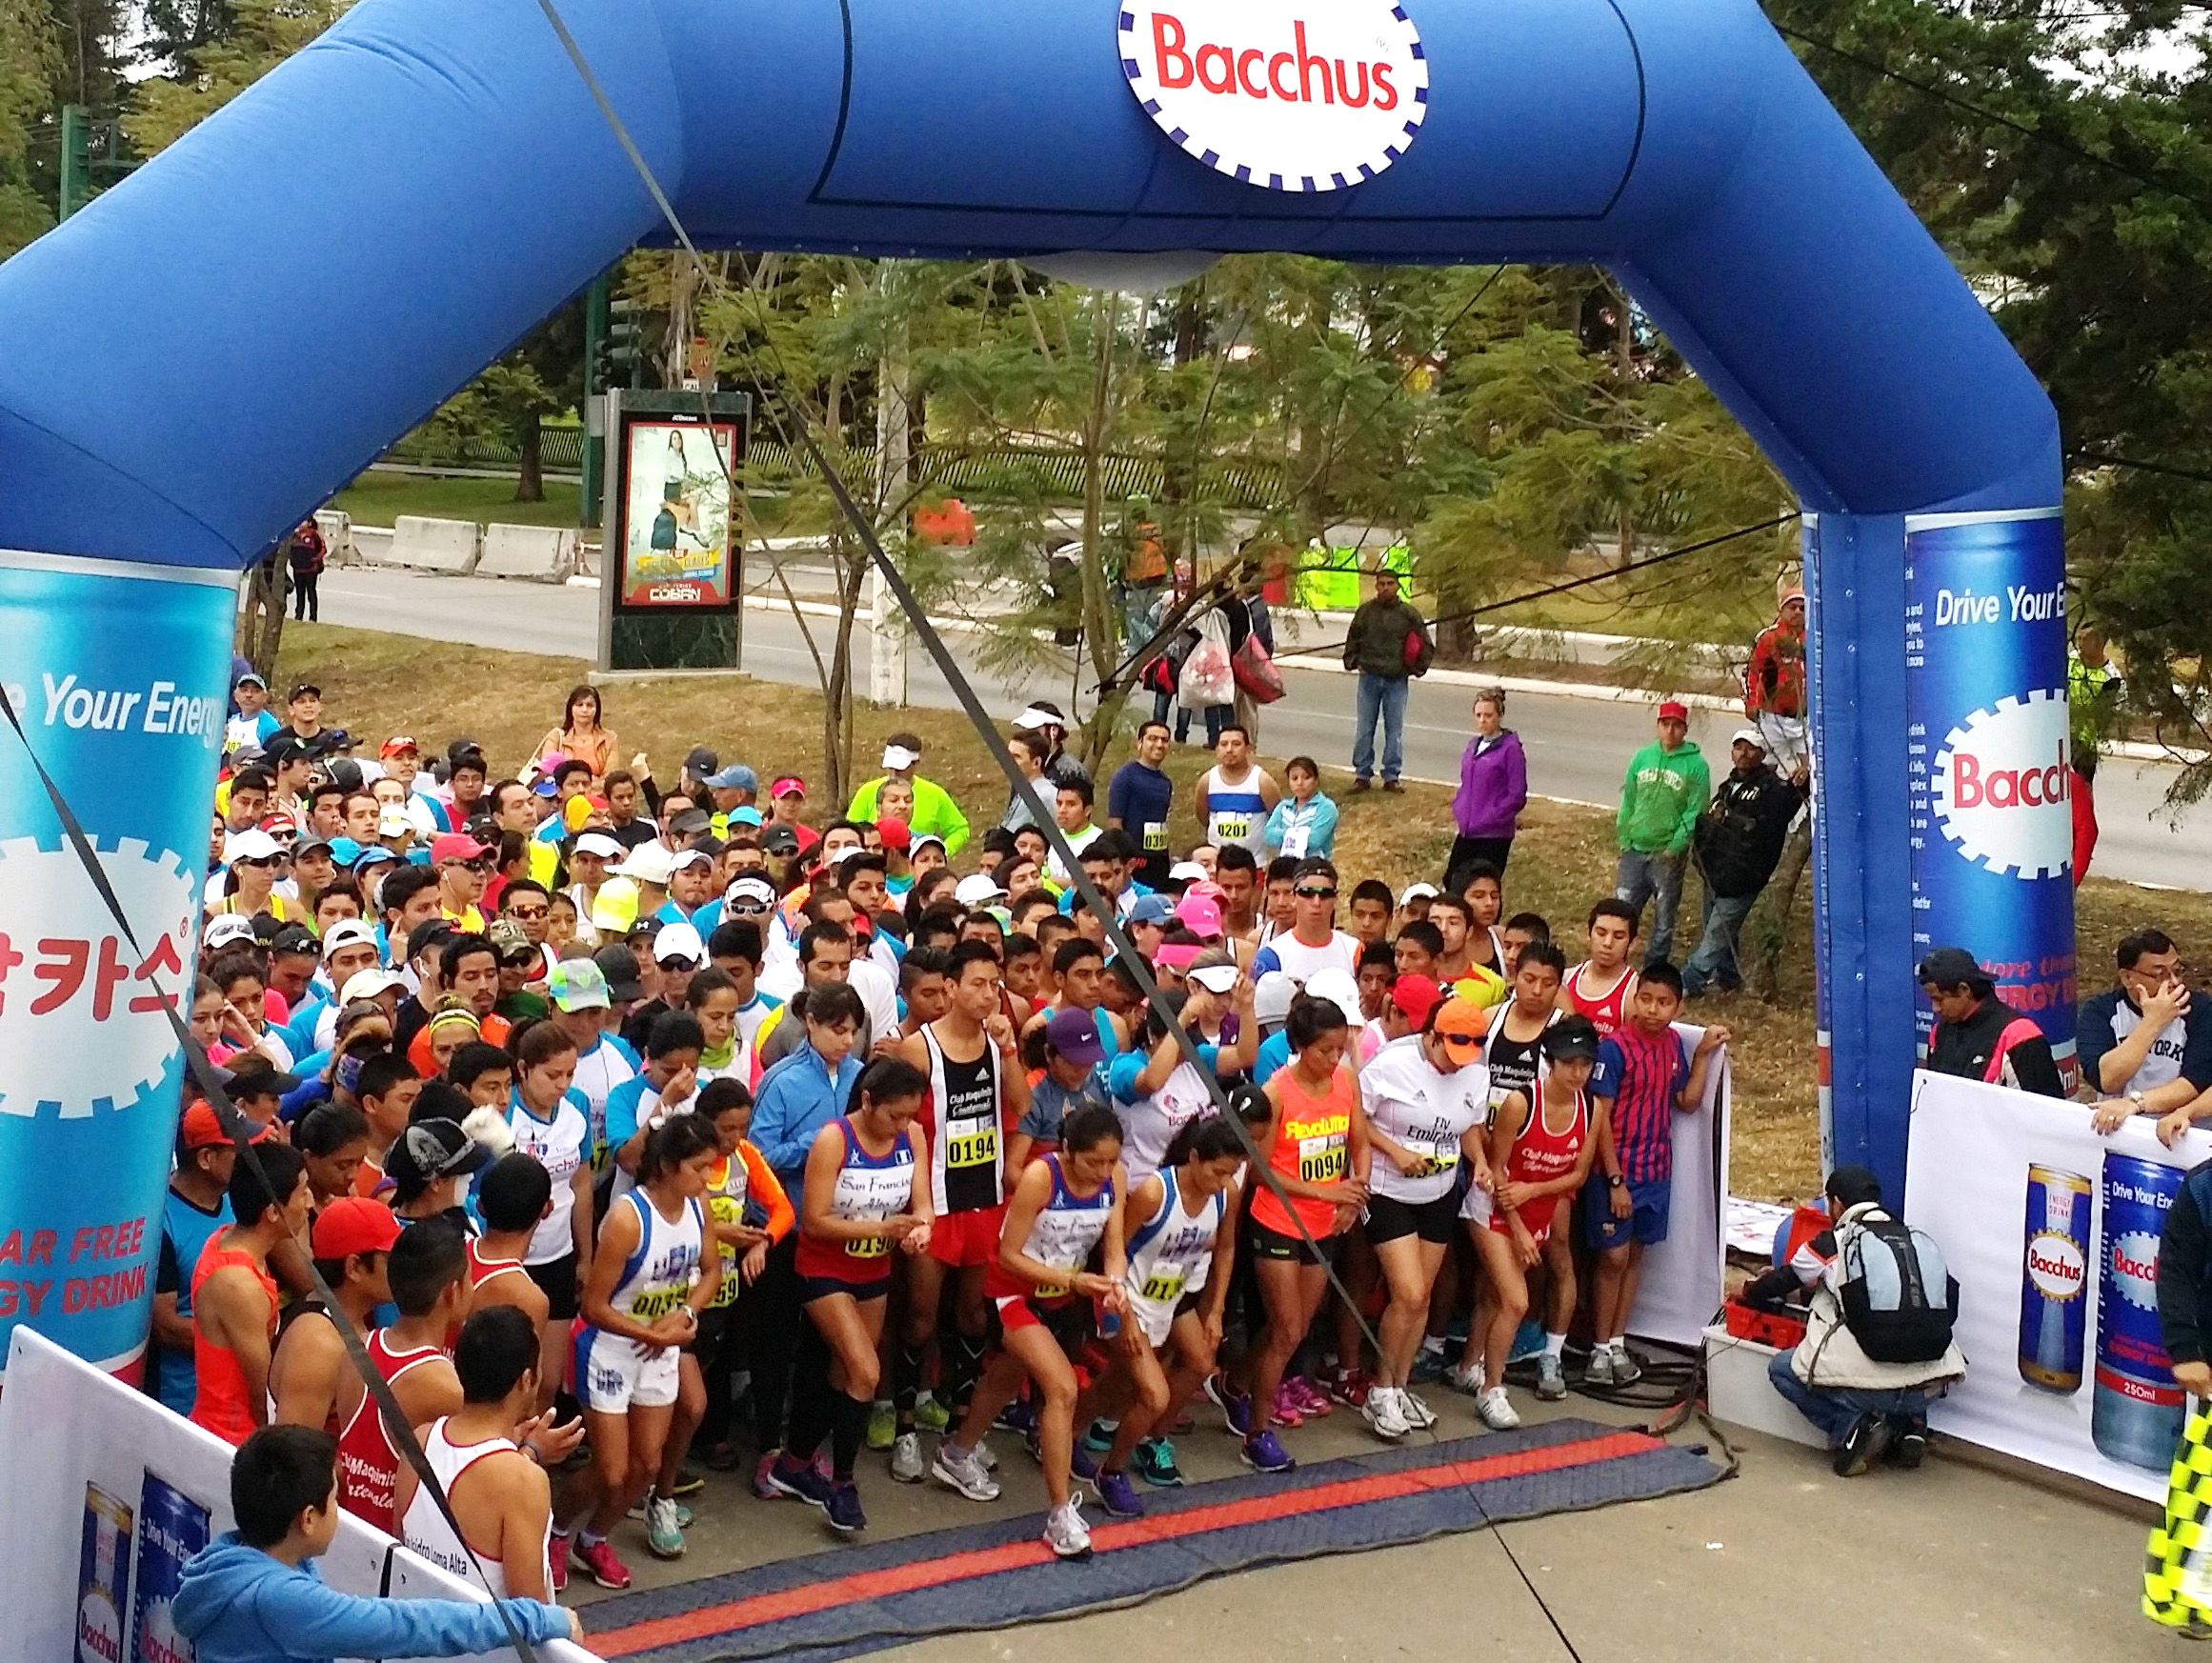 The starting line of the First Bacchus Marathon Race in Guatemala.